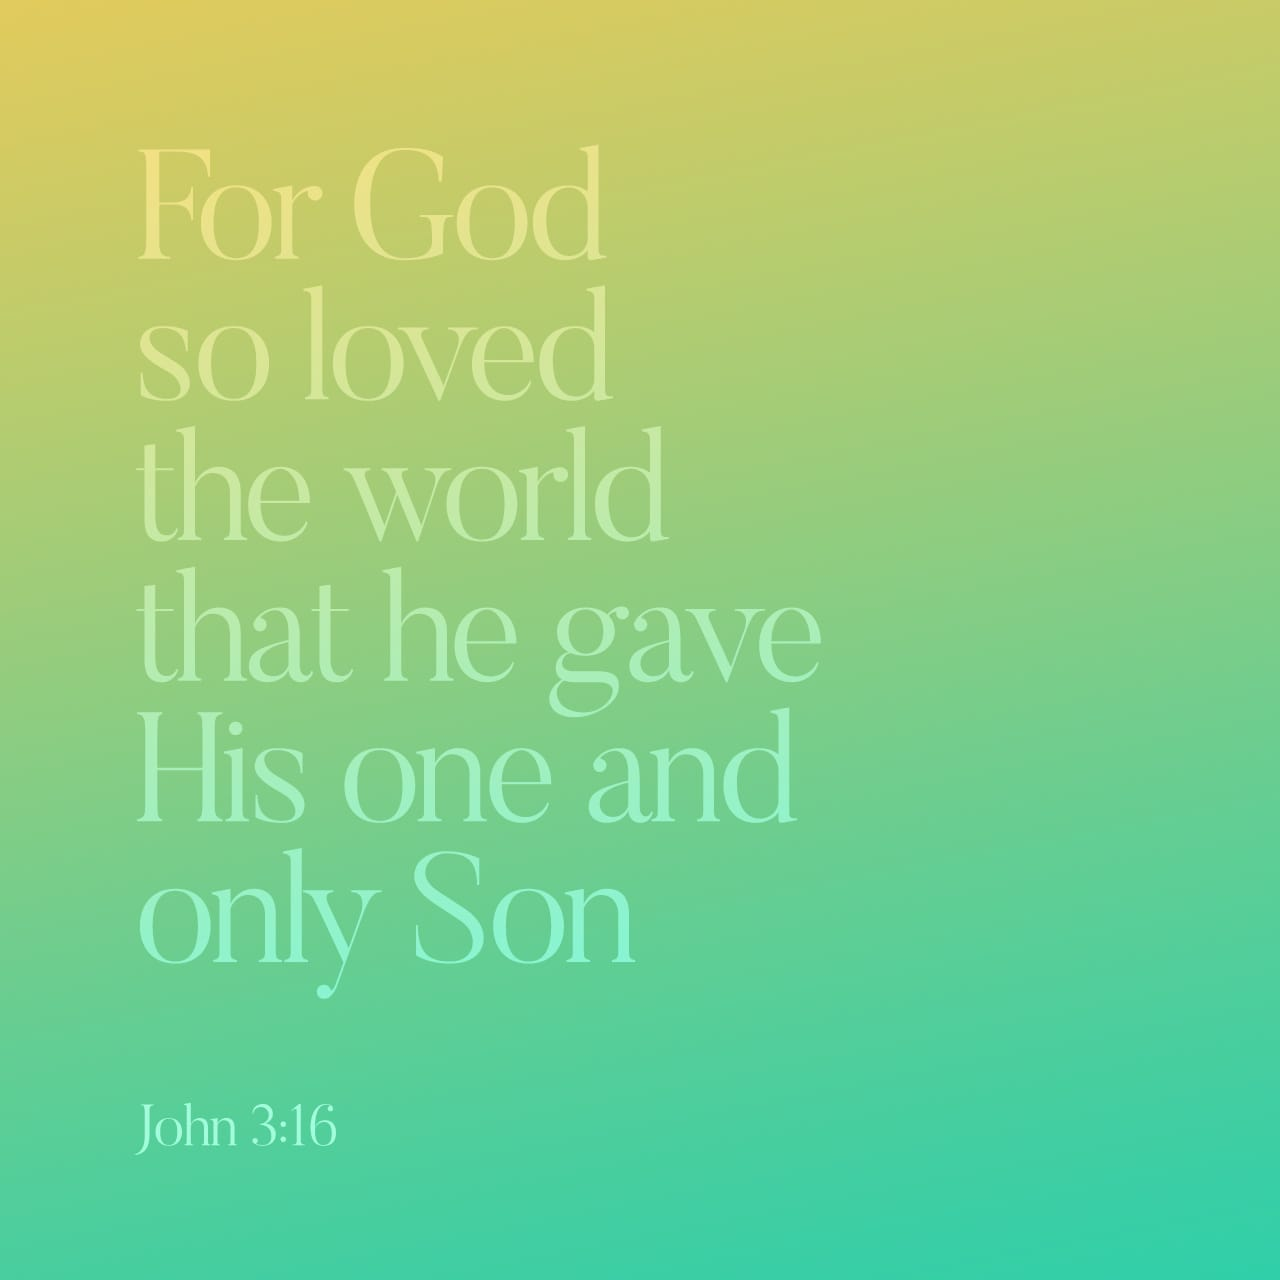 John 3:16 For God so loved the world, that he gave his only begotten Son, that whosoever believeth in him should not perish, but have everlasting life. | King James Version (KJV)